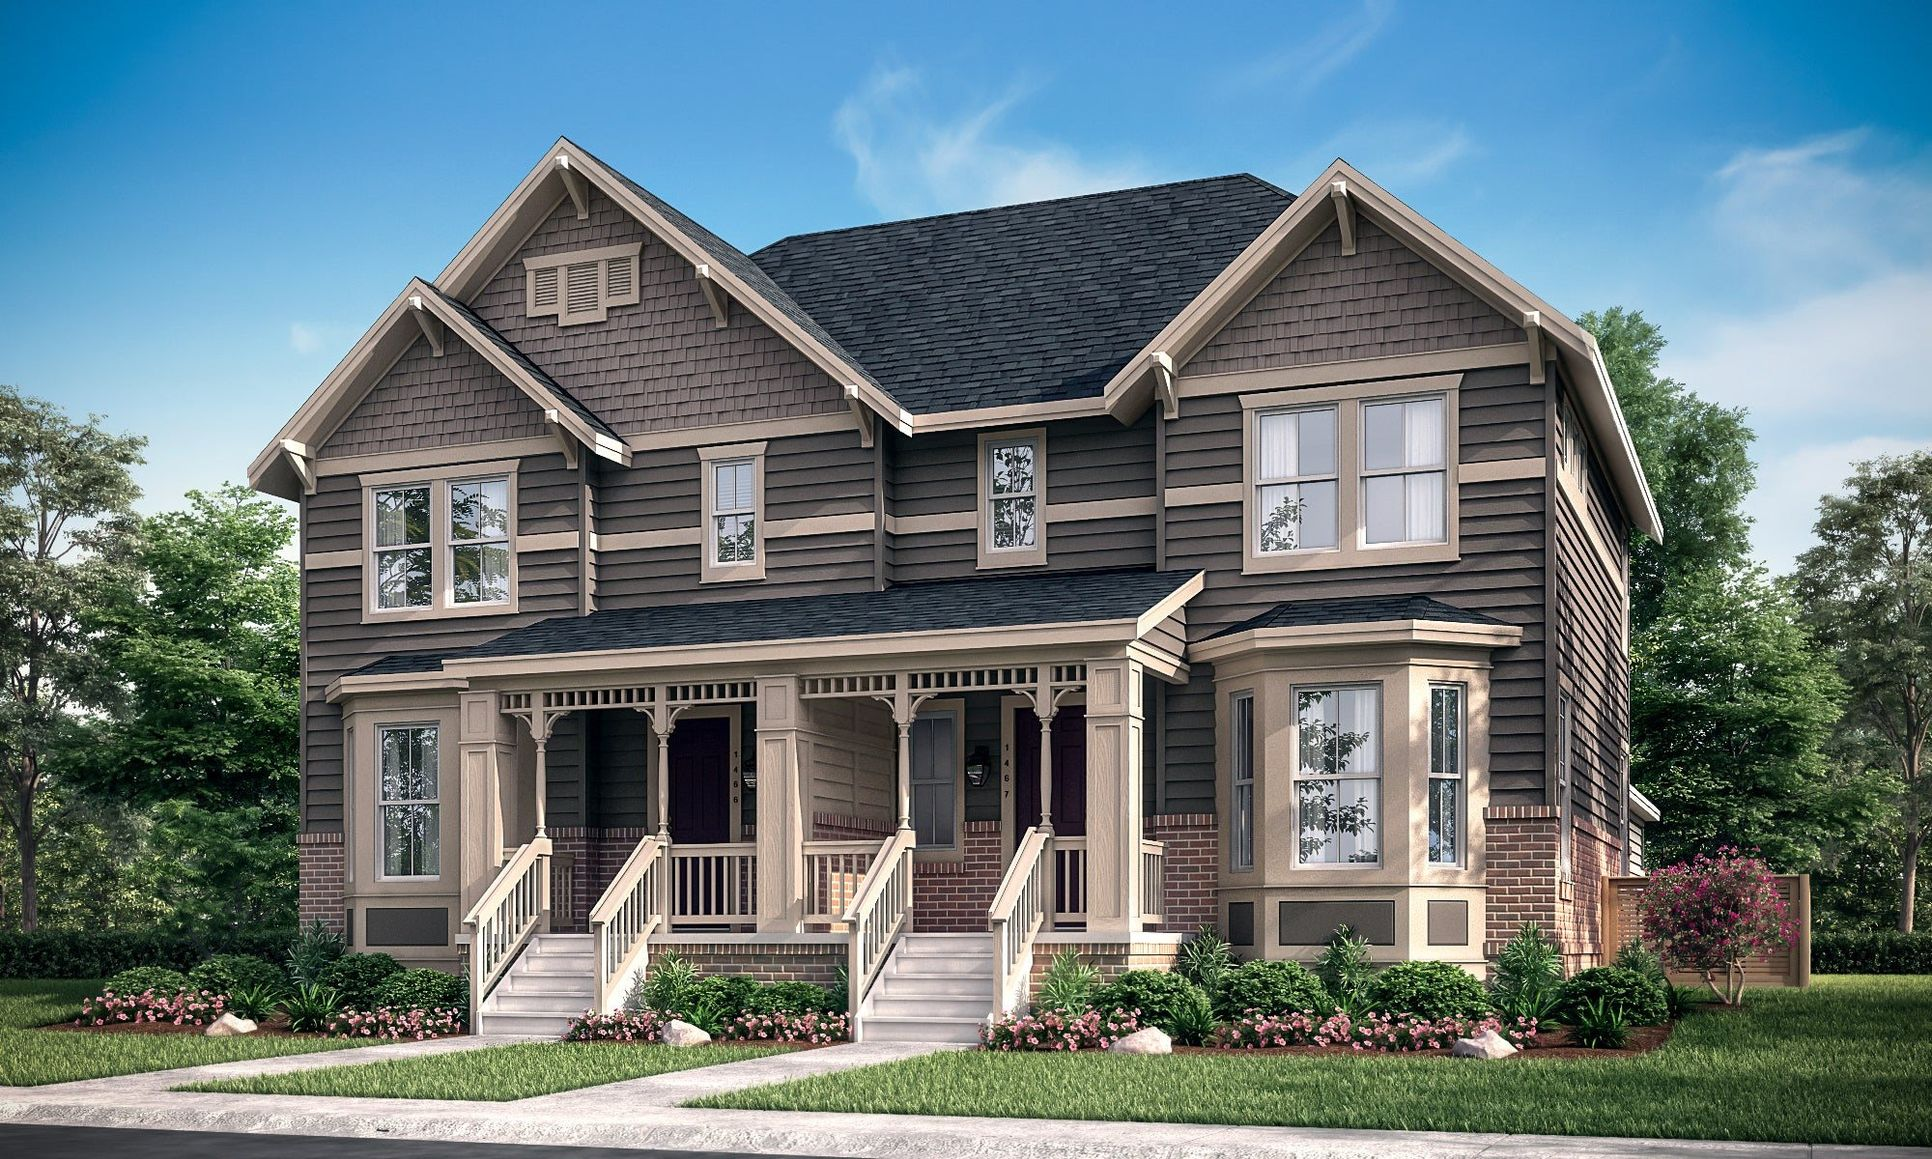 Lucent Left Colonial Exterior